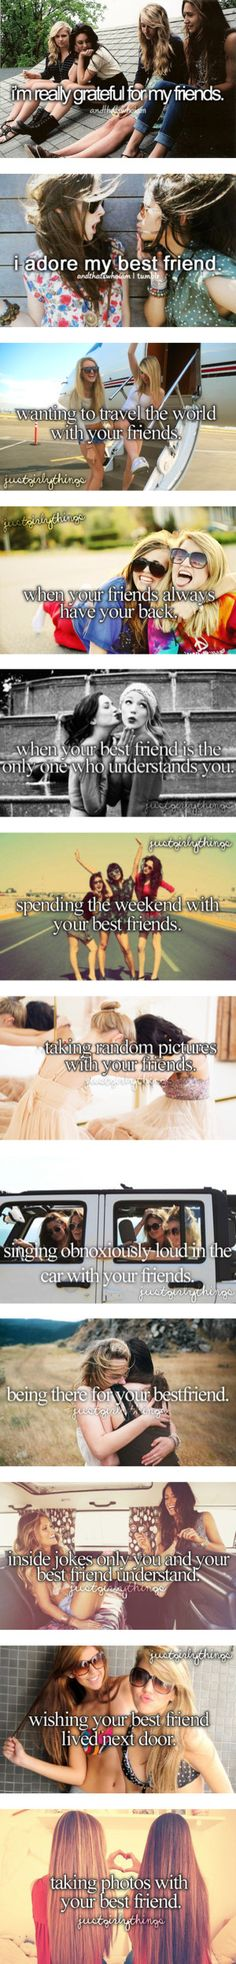 I love my friends! I mostly do all of these things.. lol <3 @Aylin Avila Juarez @Thania Hermosillo @Sesthleng Garcia @Josselyne Jurado @Aubrianna Campbell